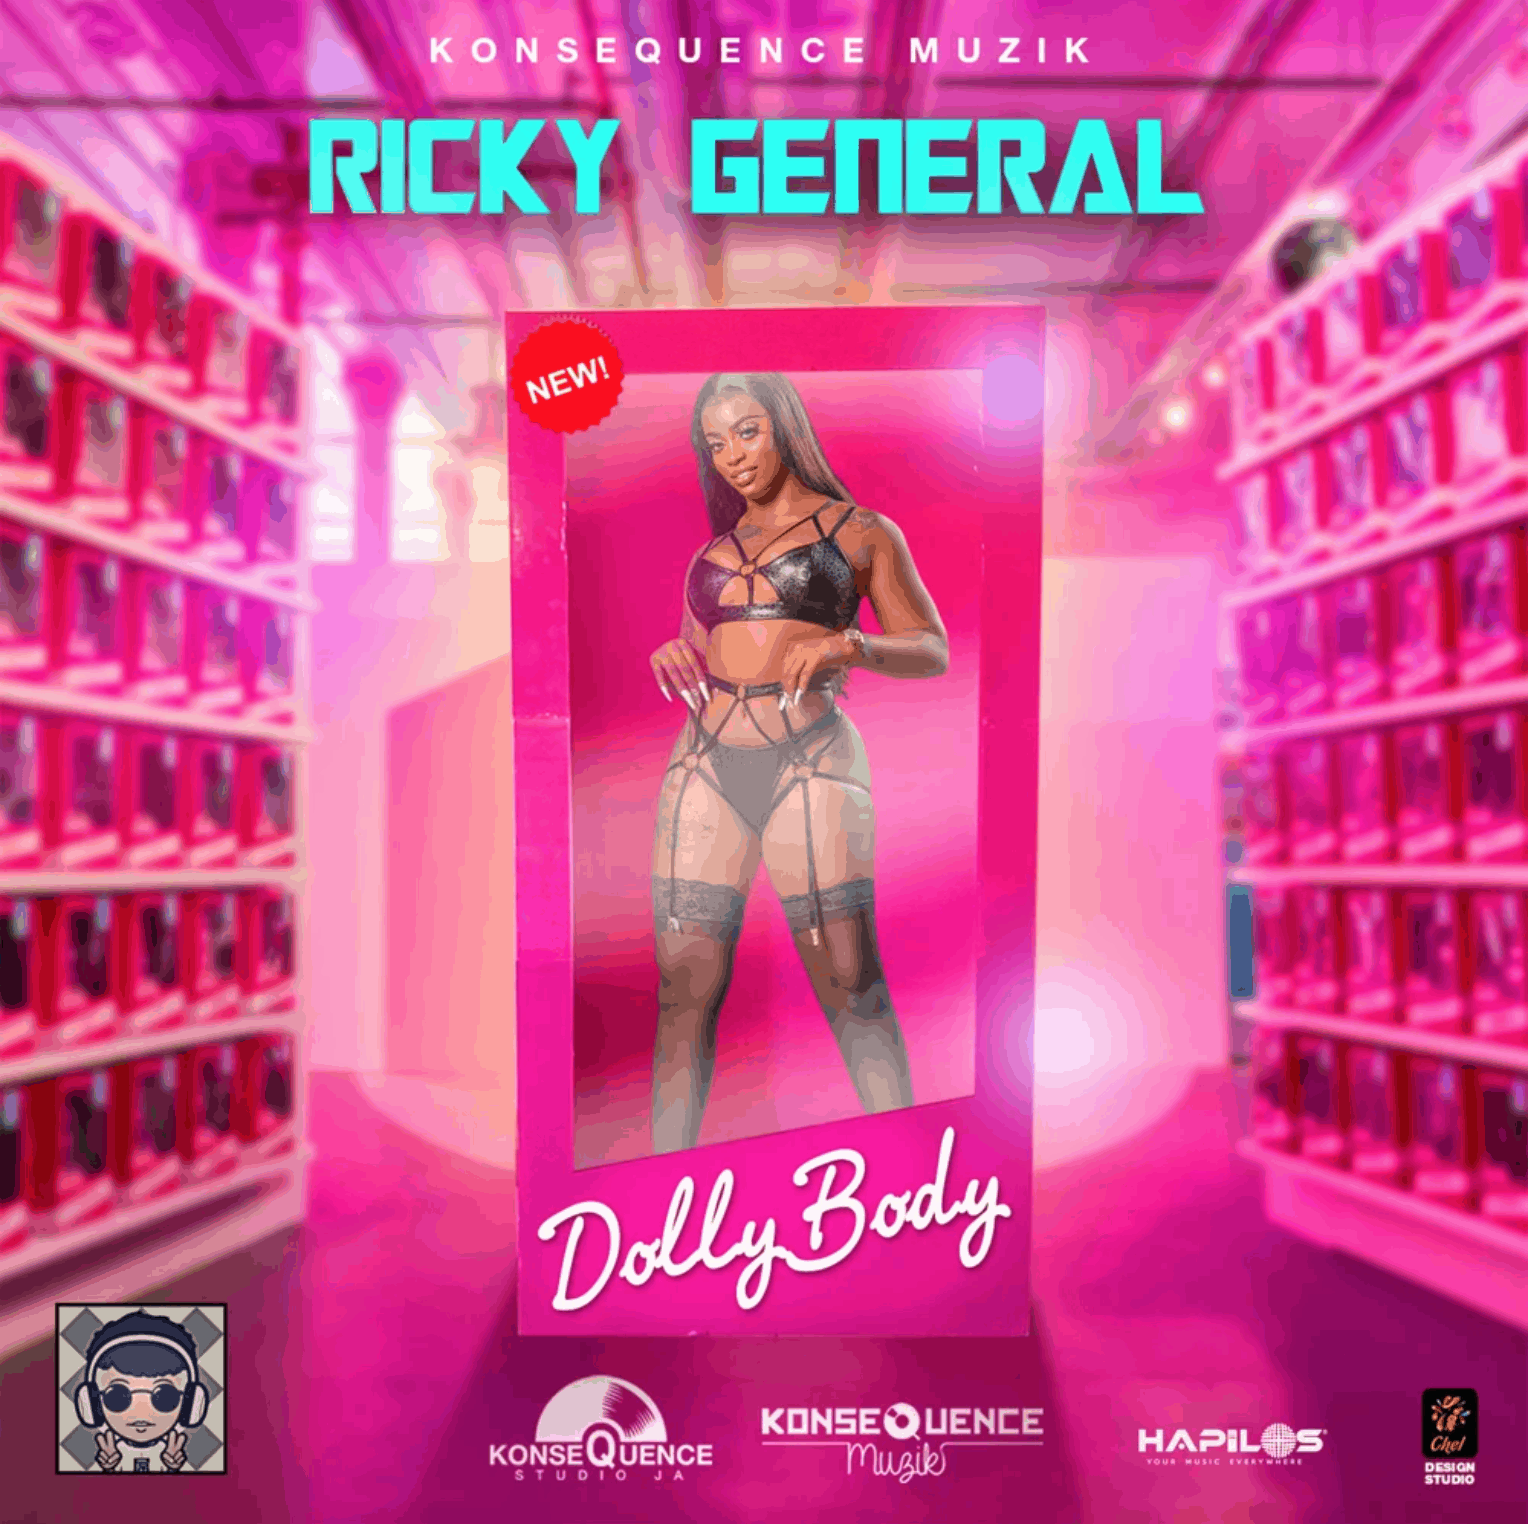 Ricky General - Dolly Body - Konsequence Muzik